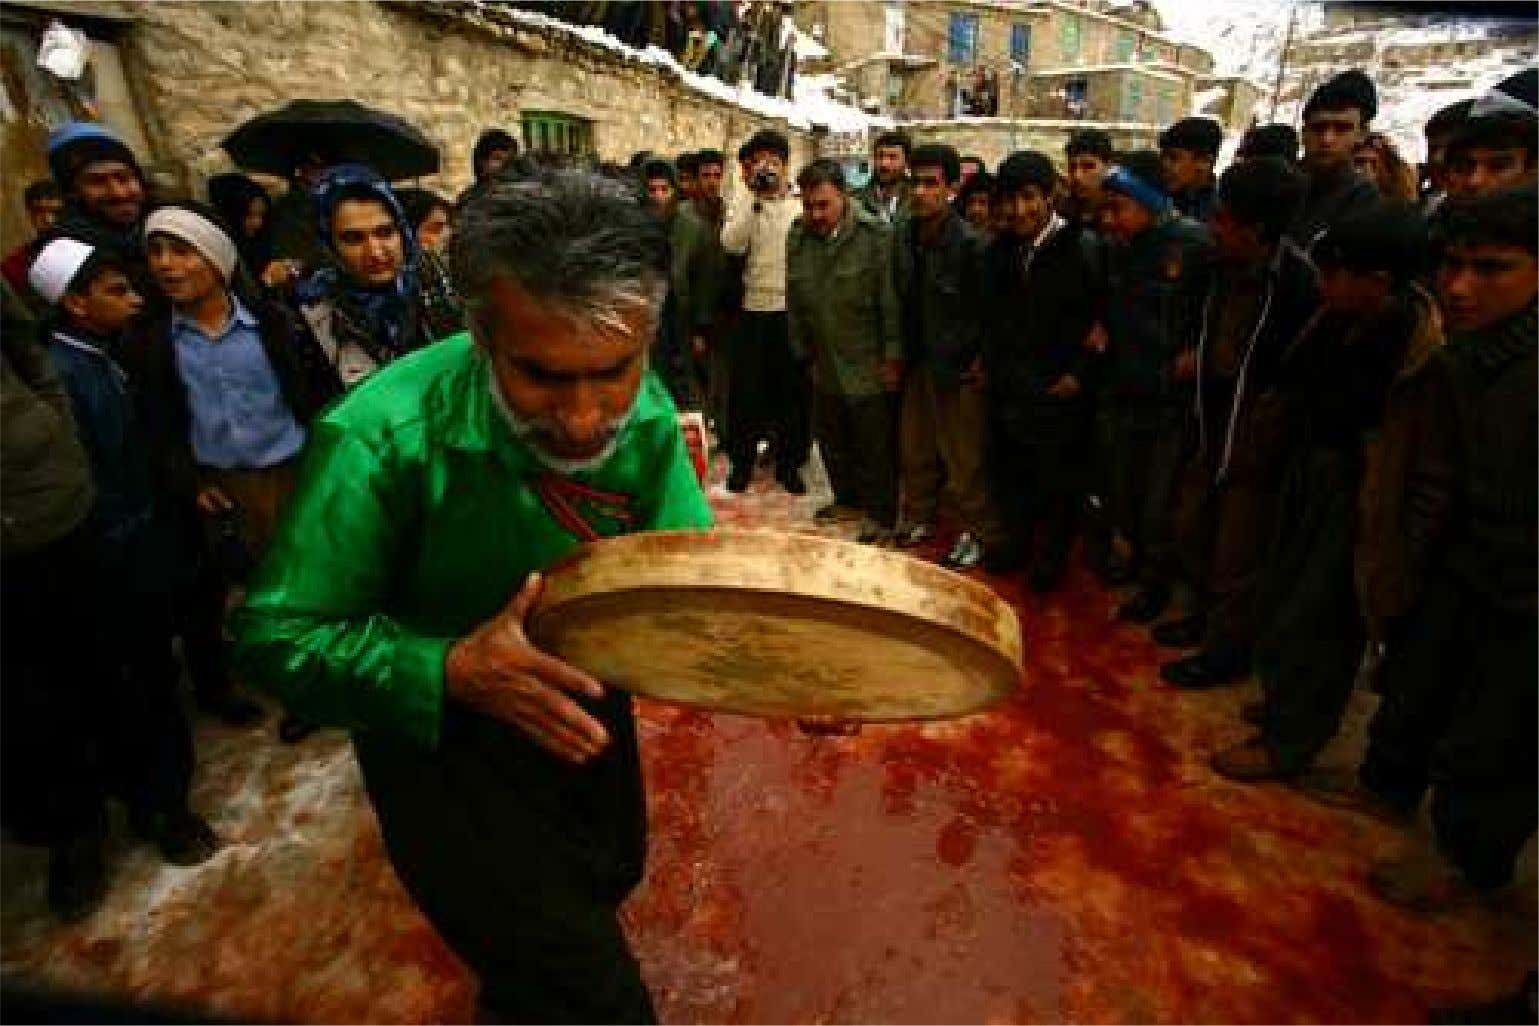 BLOODBATH FOR SEASONNAL REBIRTH VOW About sixty sheeps & beefs are slaughtered in the occasion